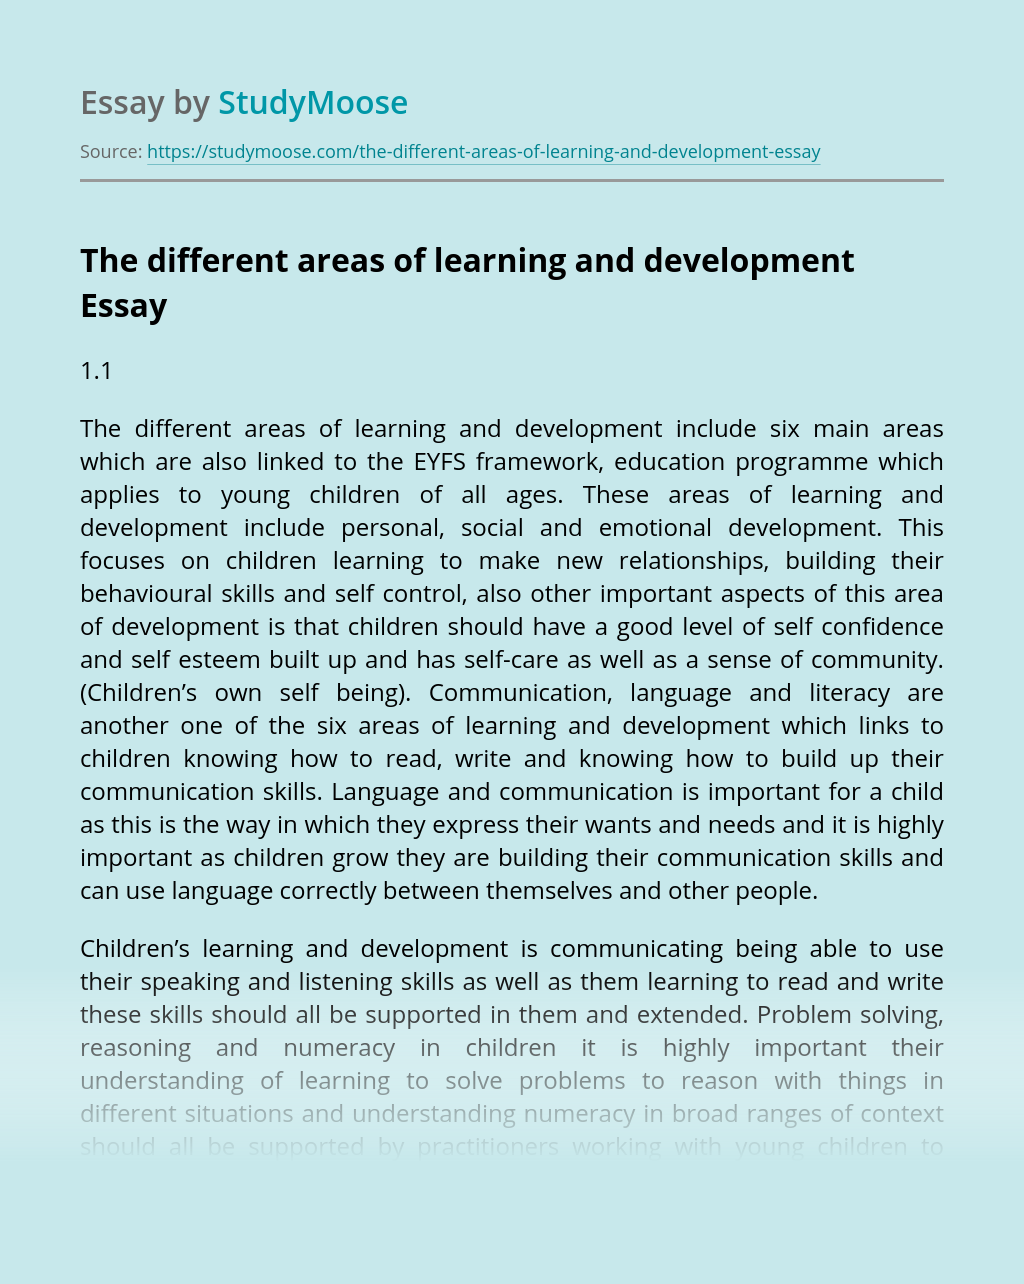 The different areas of learning and development